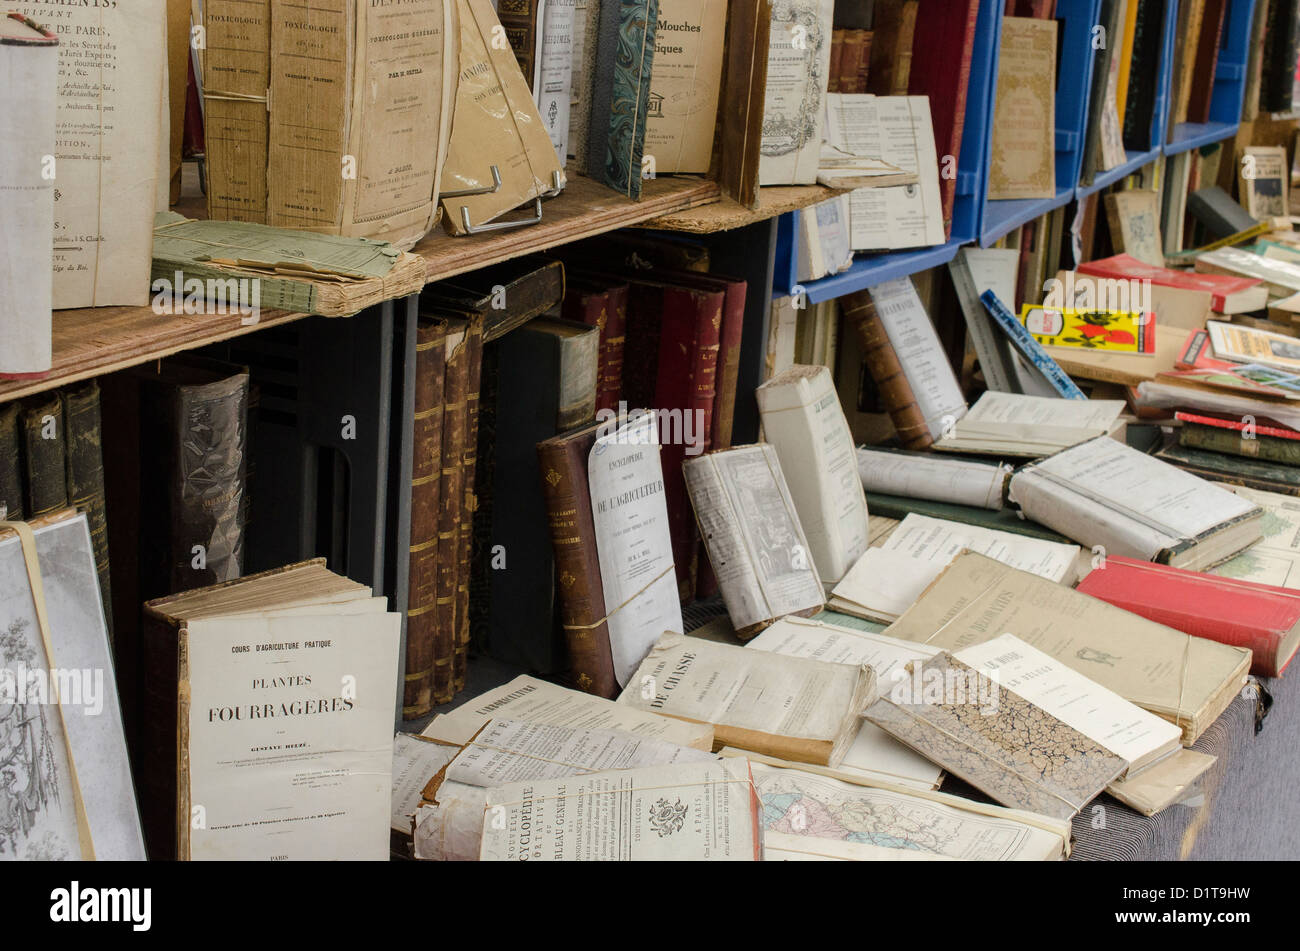 Books on secondhand market stall Stock Photo